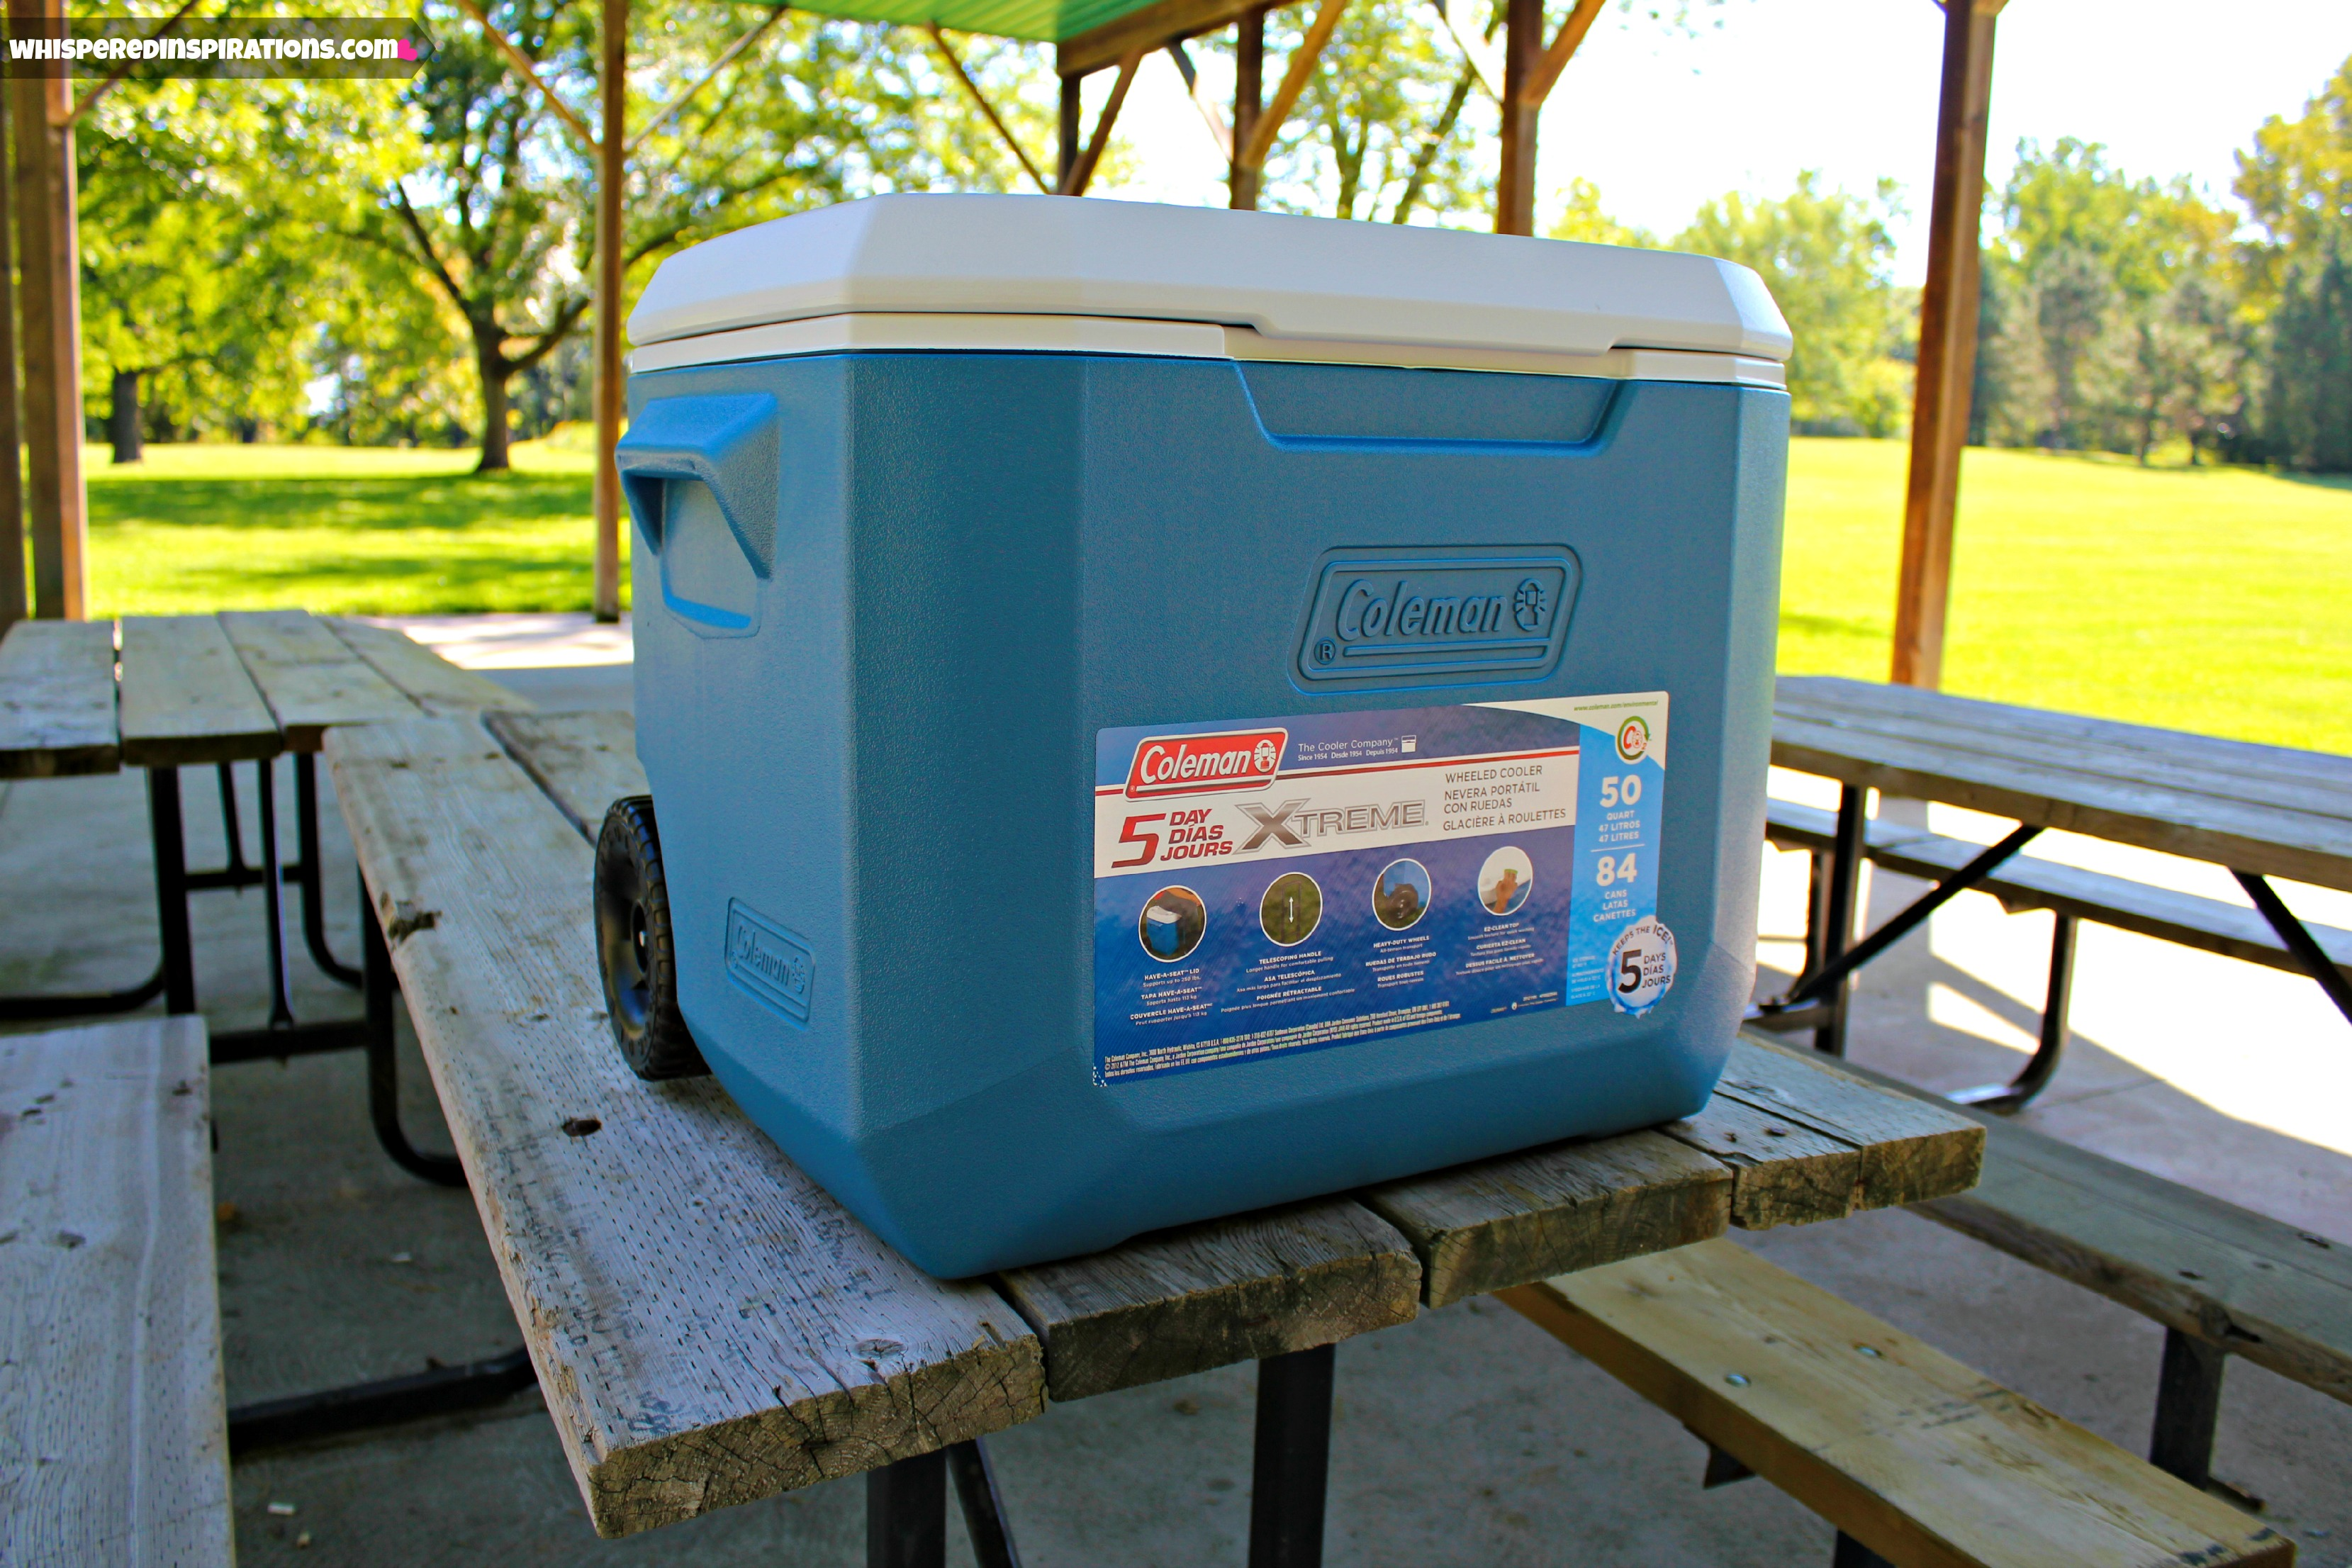 Picnicking with Coleman: The Coleman 70 Qt. Xtreme Cooler Will Keep Your Ice Frozen for 5 Days & Keep Your Drinks Cool & Food Fresh!